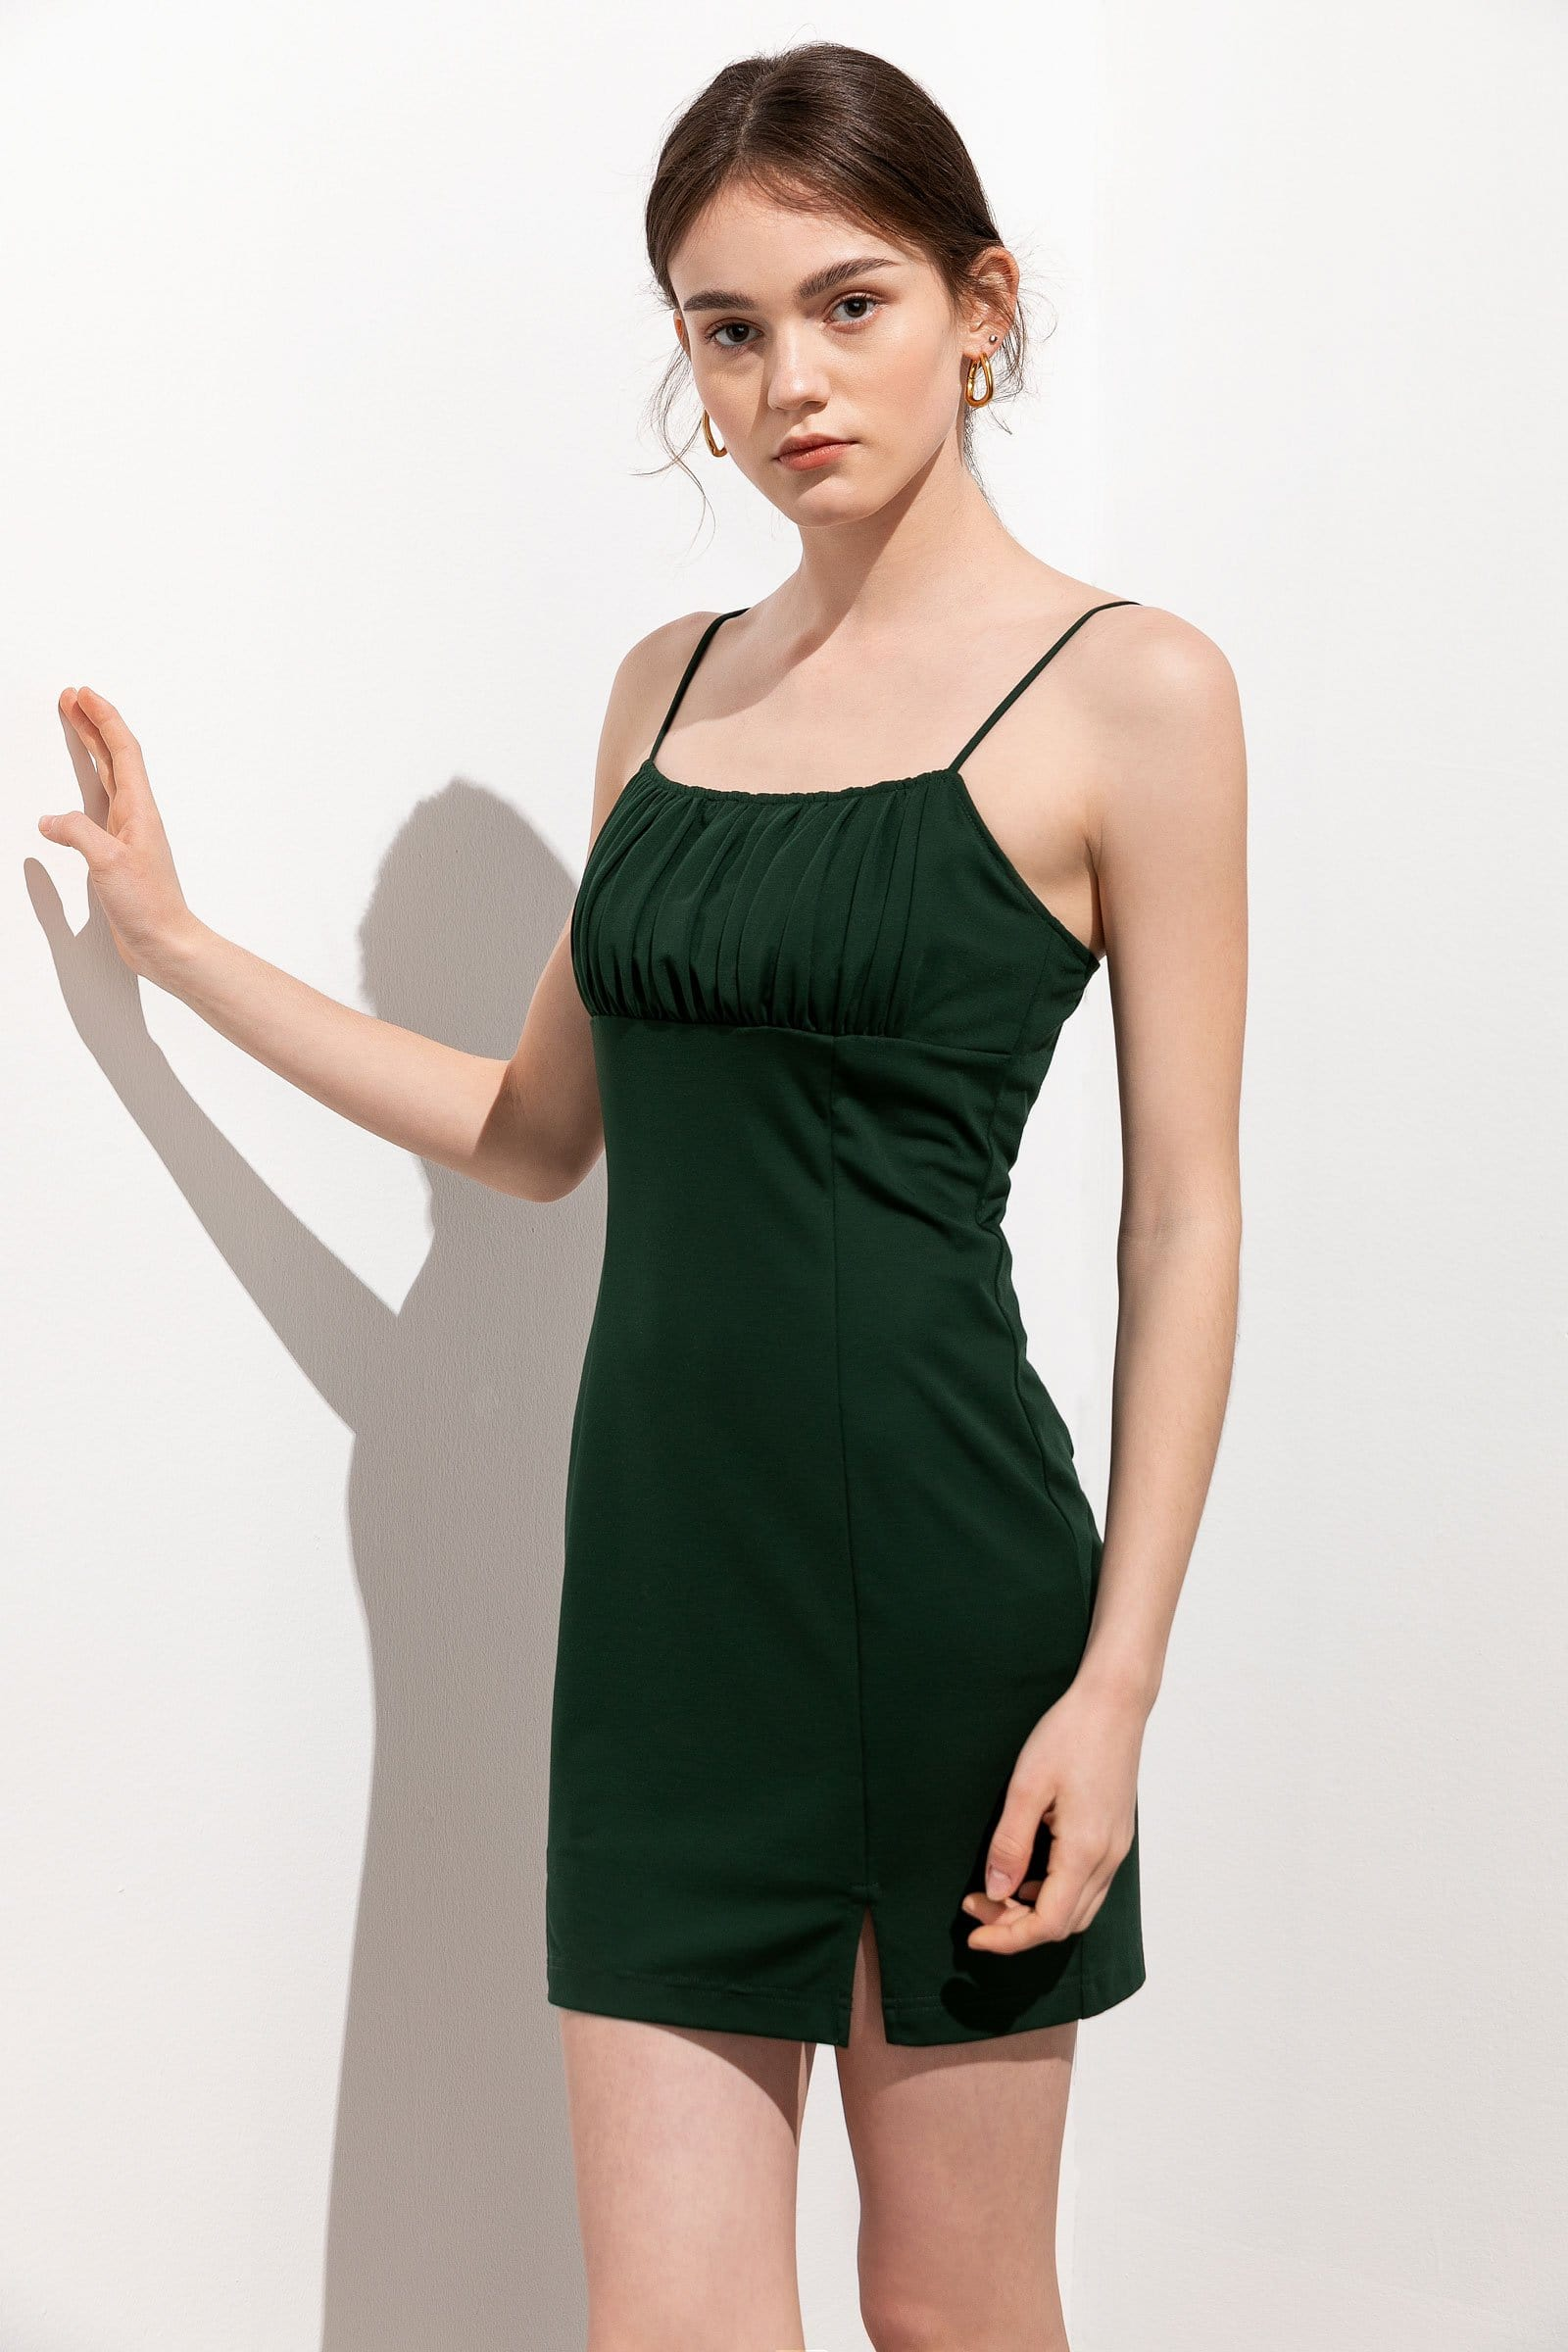 Titania Green Babydoll Mini Dress